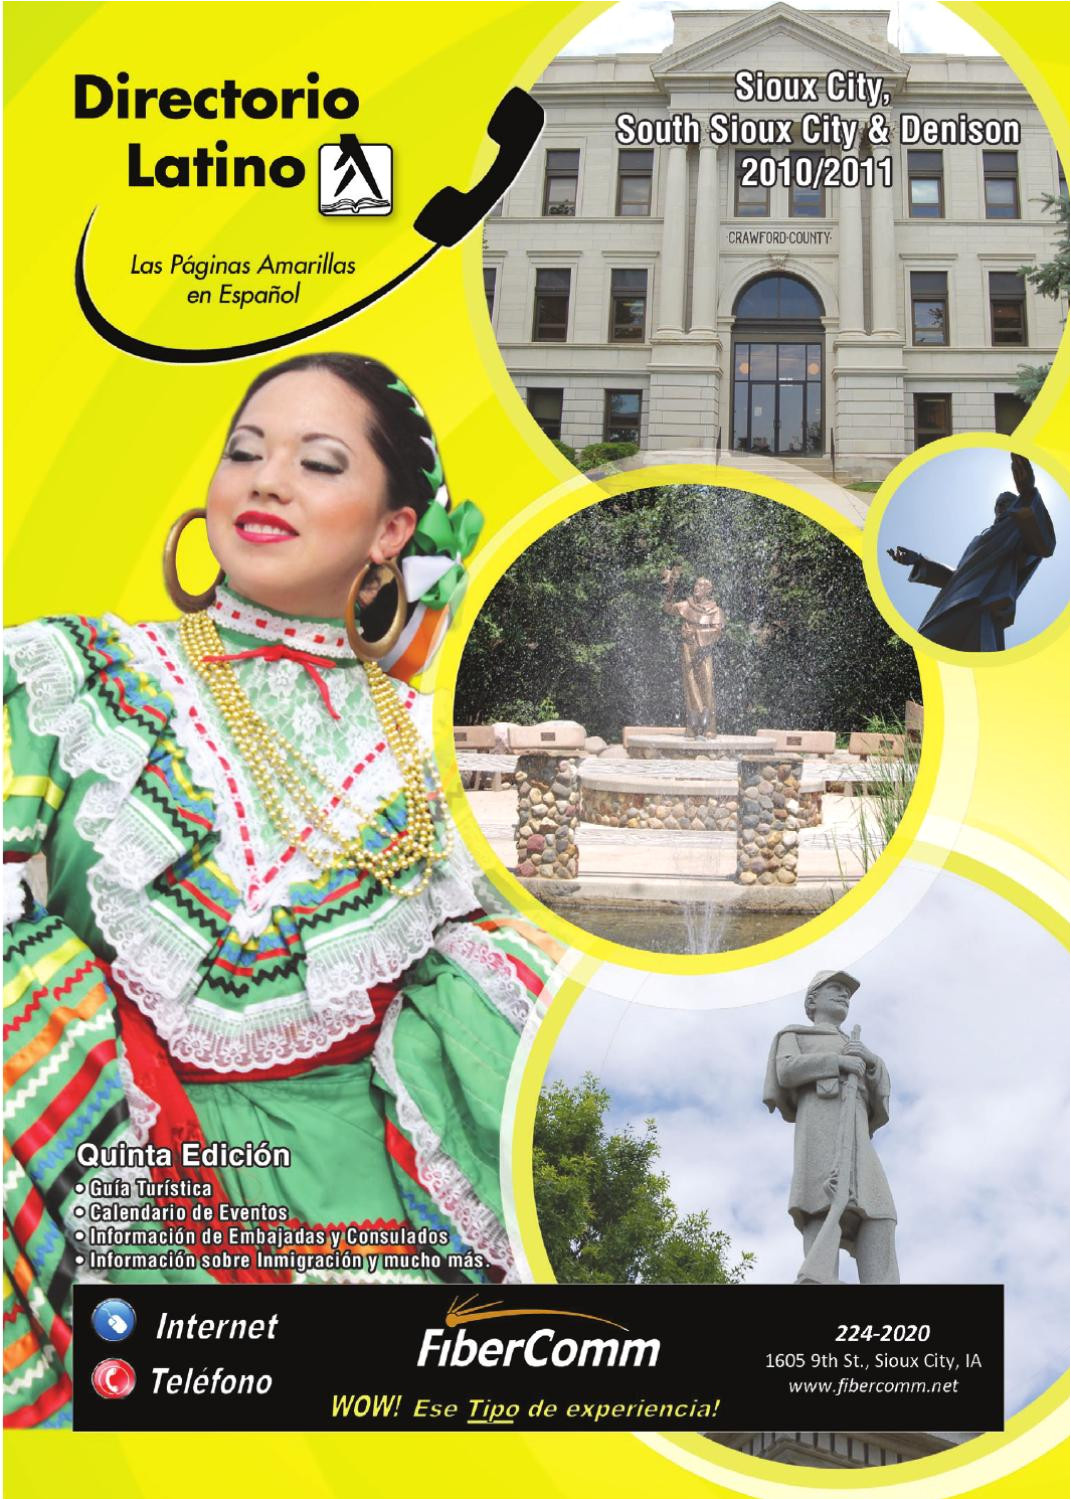 directorio latino sioux city south sioux city denison 2010 2011 by pioneer publishing issuu